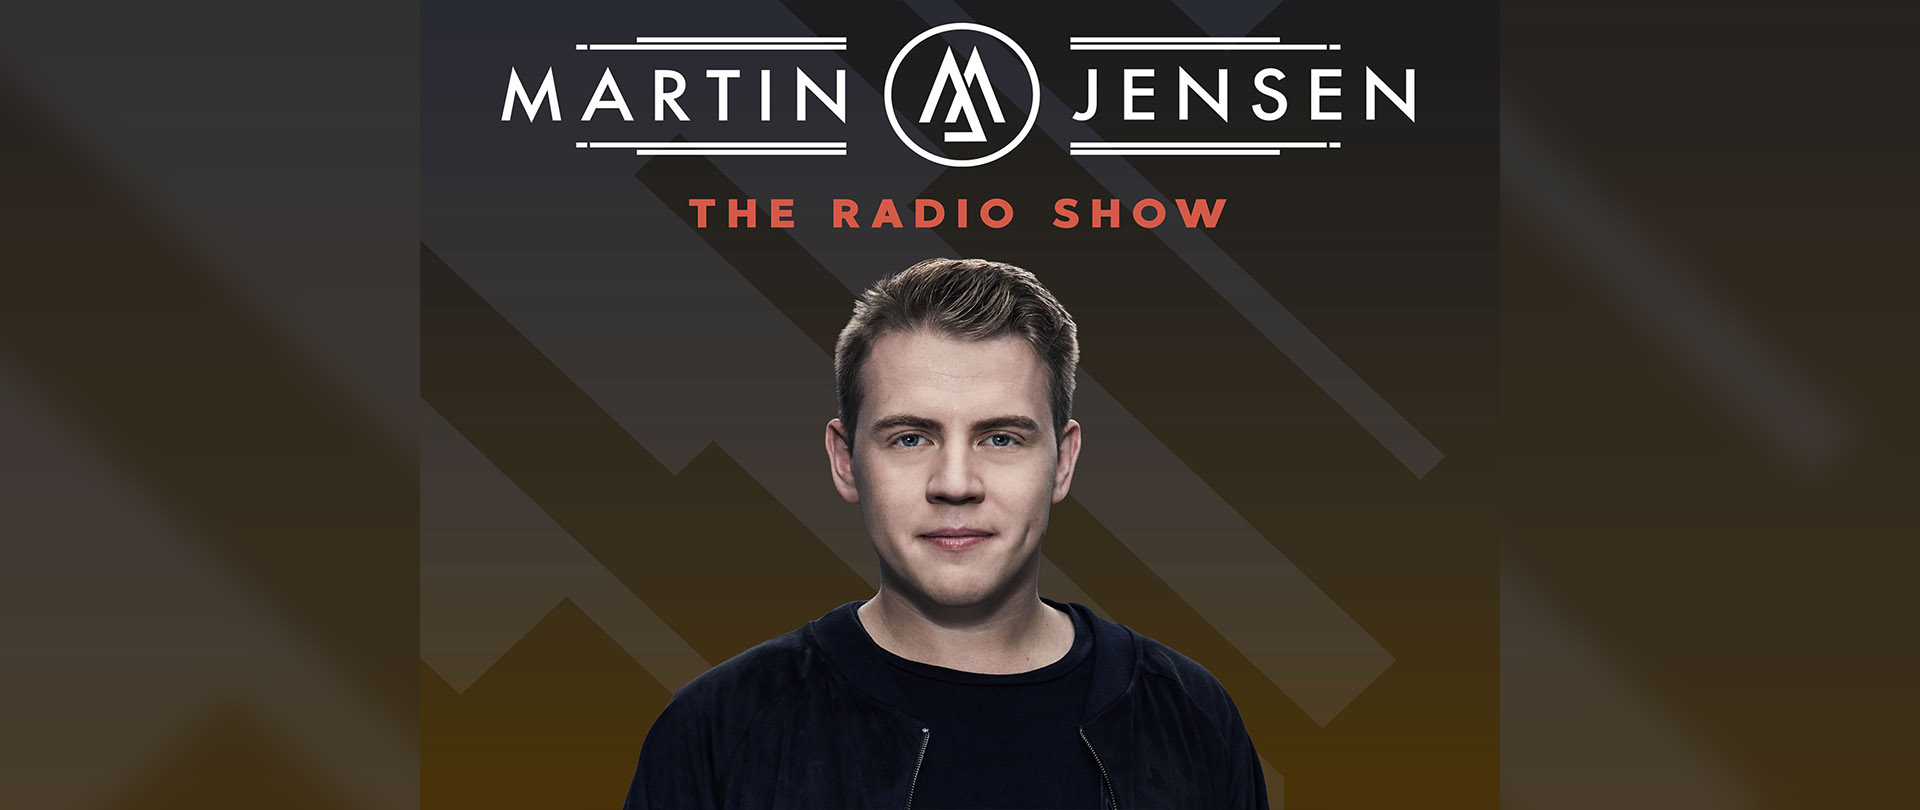 The Martin Jensen Radio Show